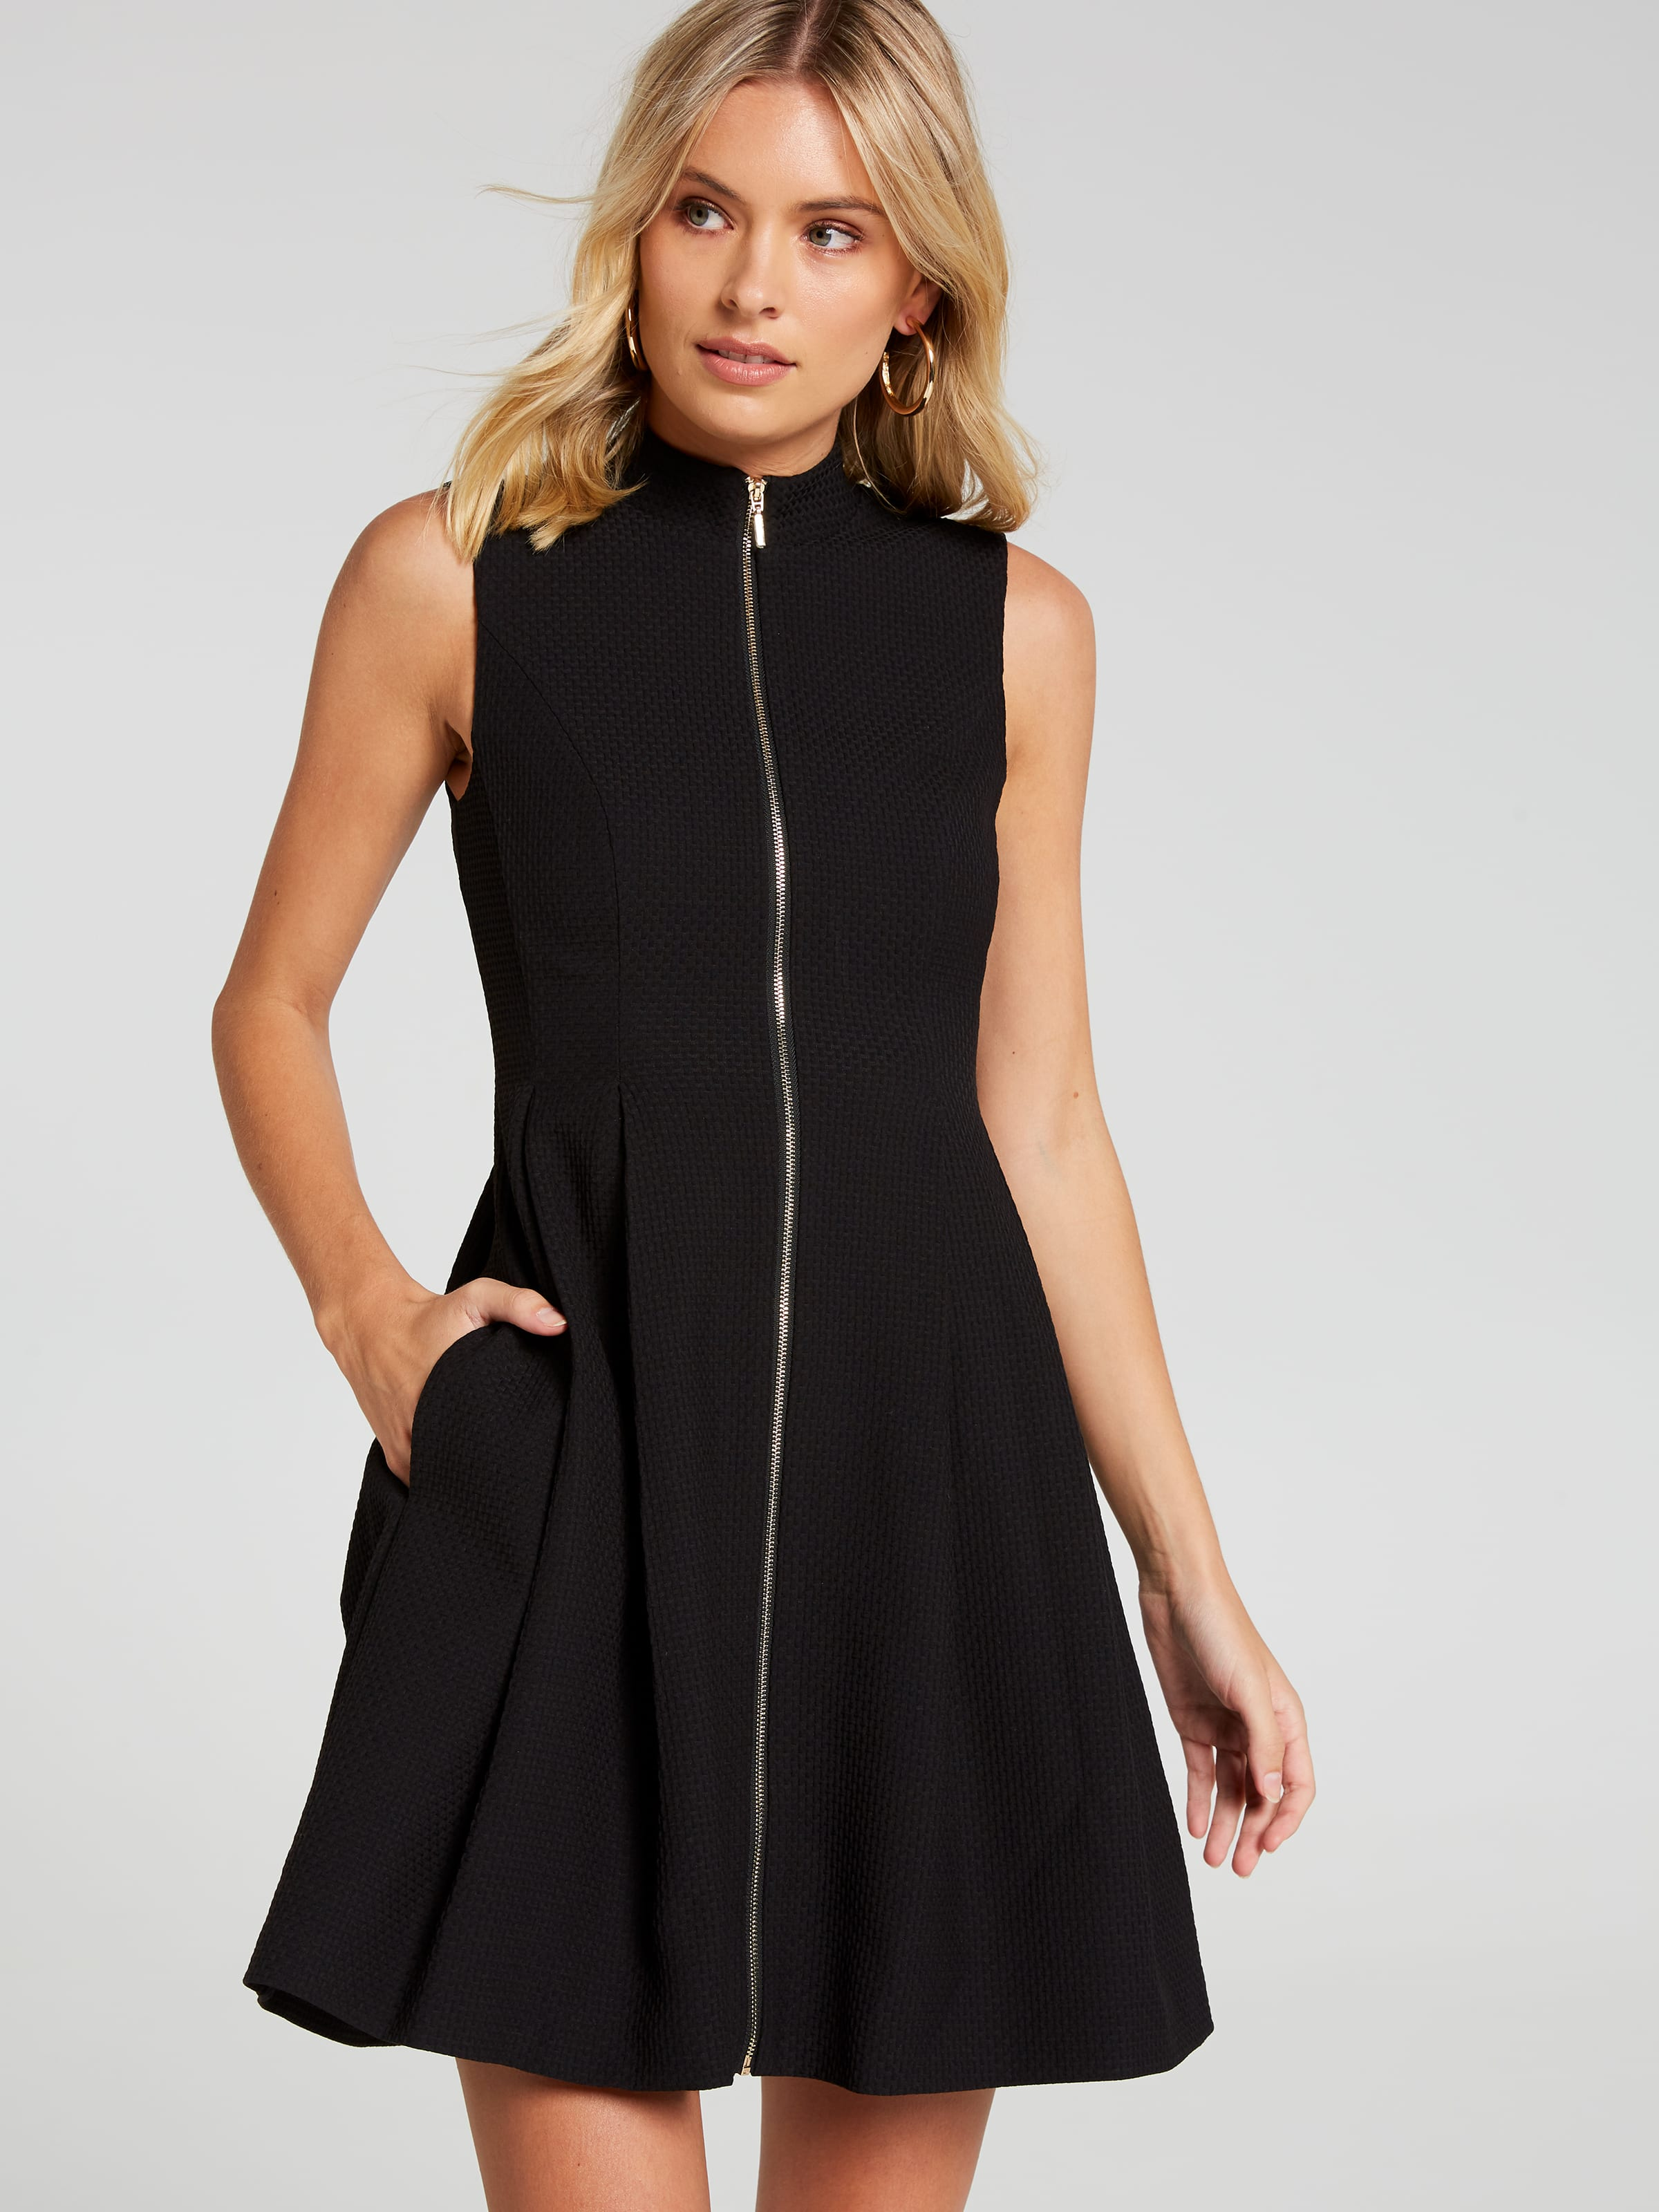 Image of Portmans Australia Portmans Adelaide High Neck F & F Dress